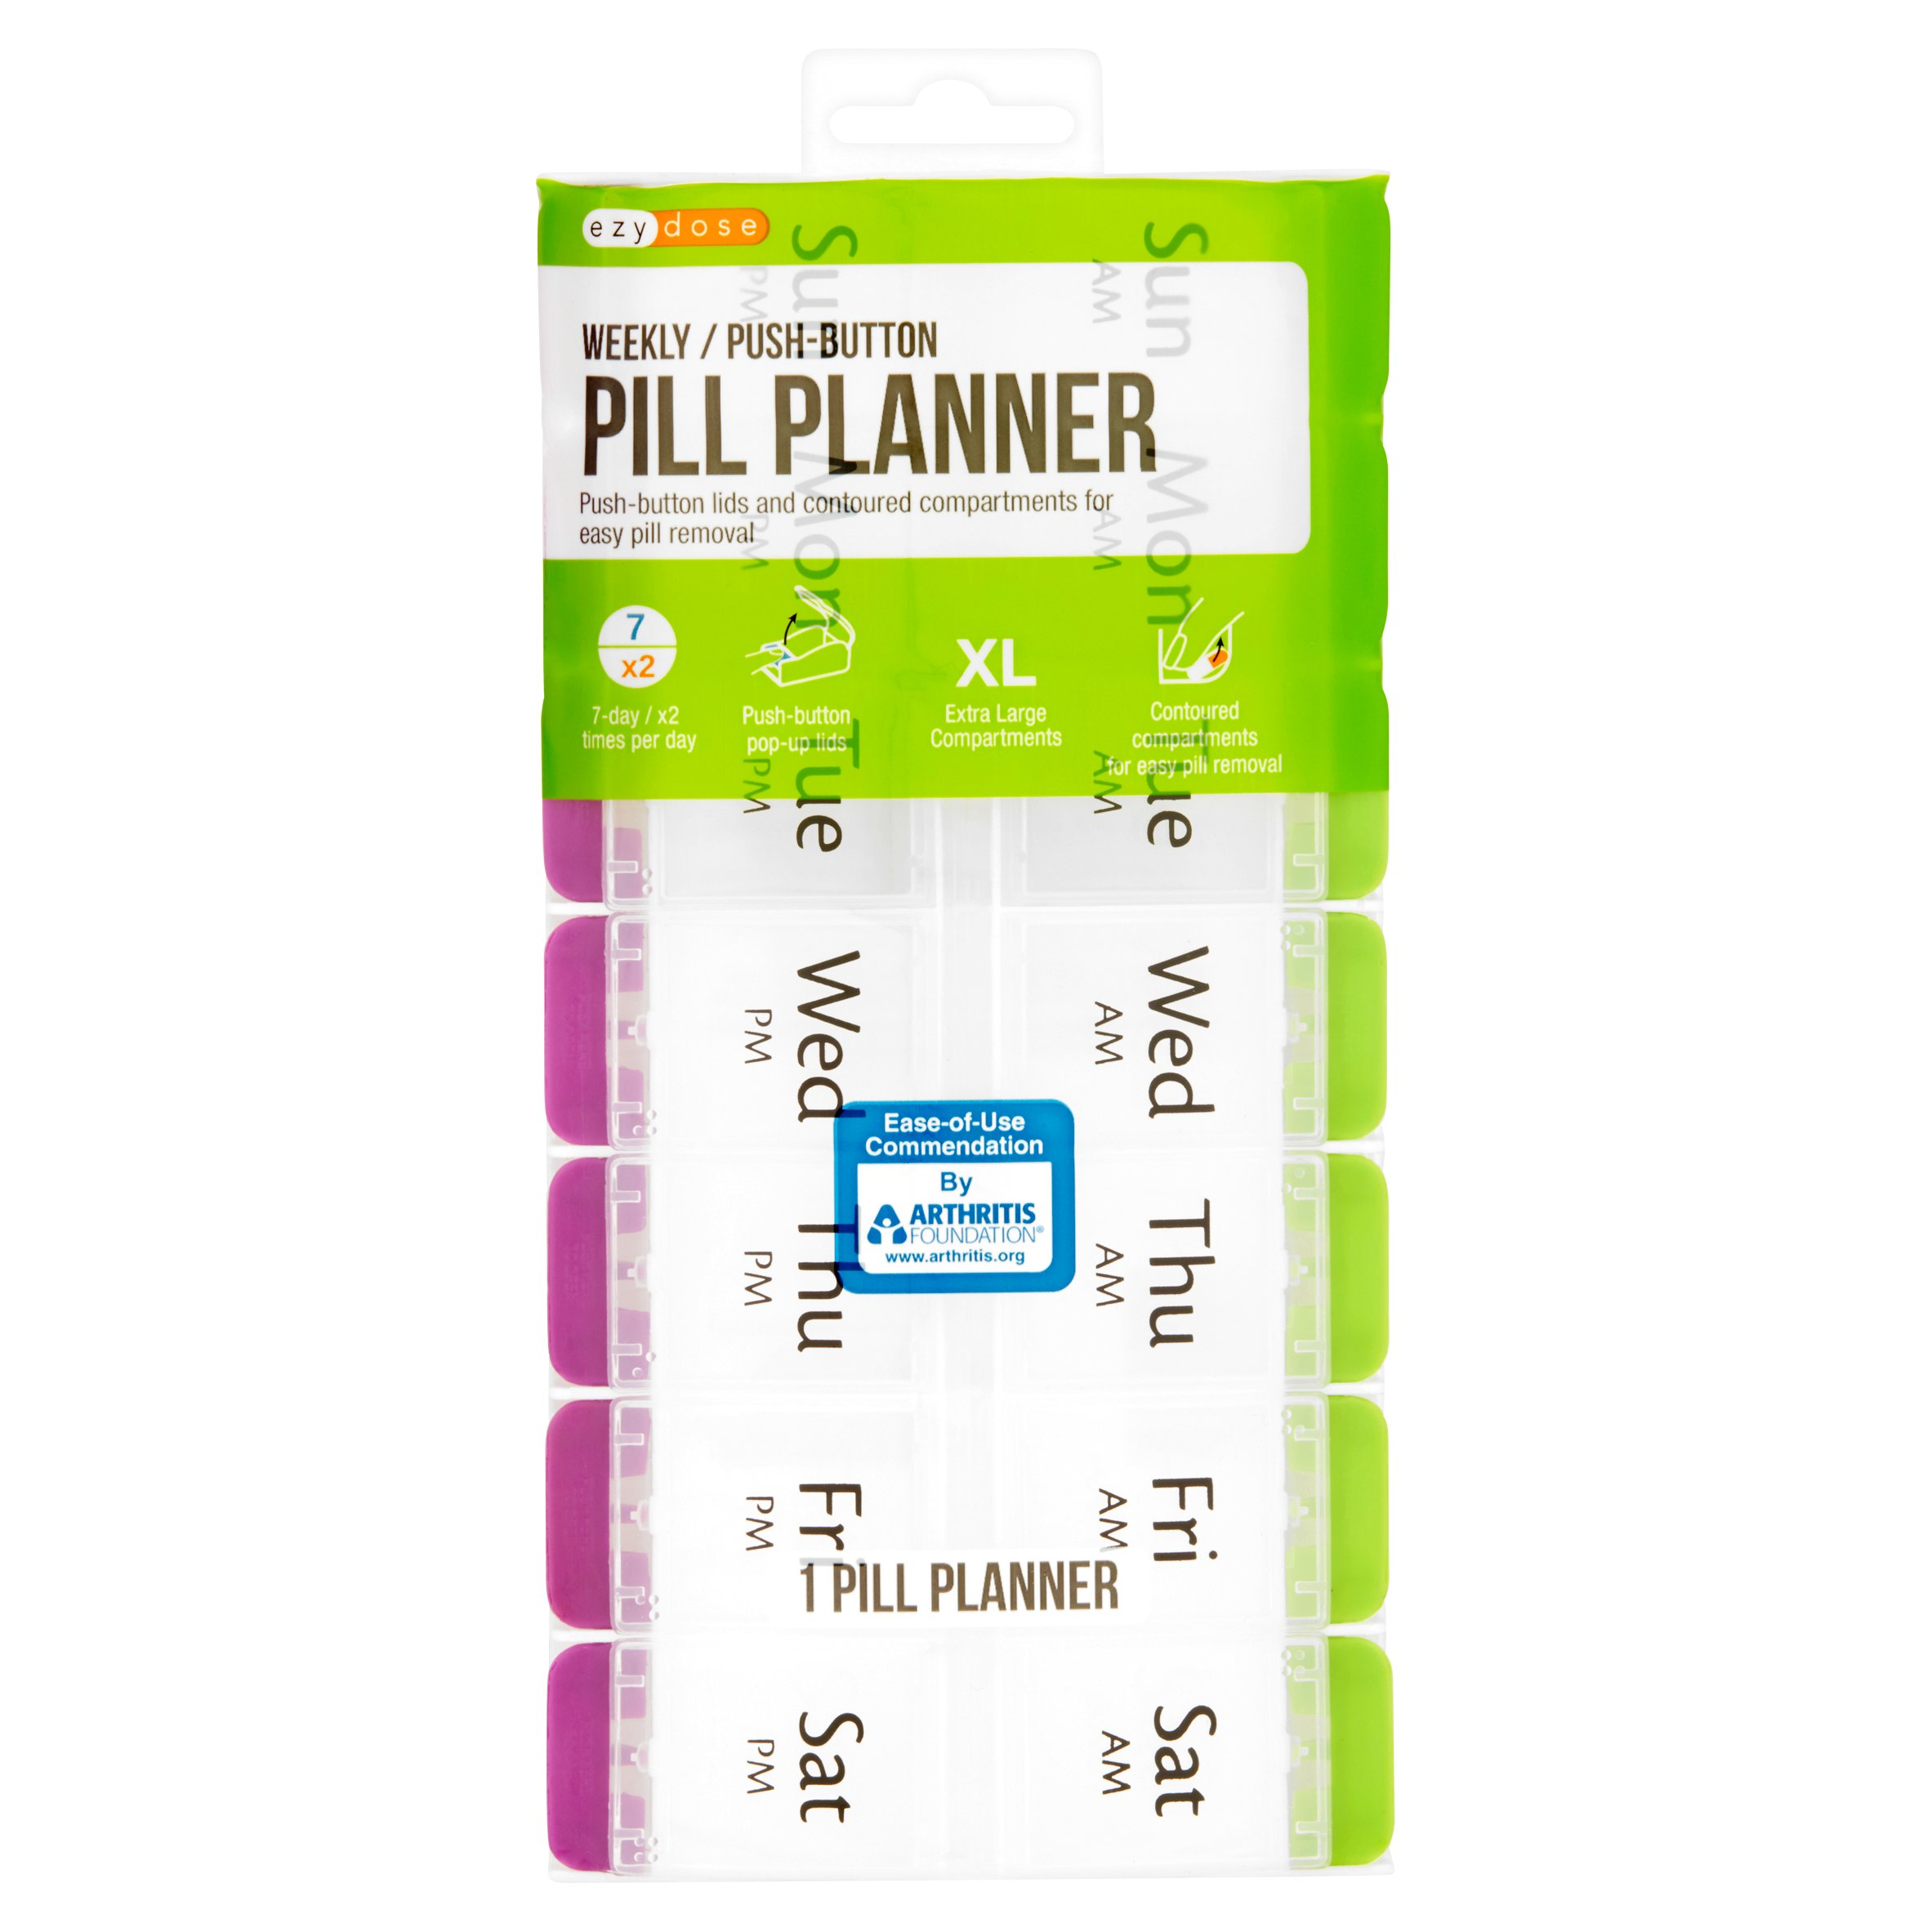 Ezy Dose Weekly Push Button Pill Planner